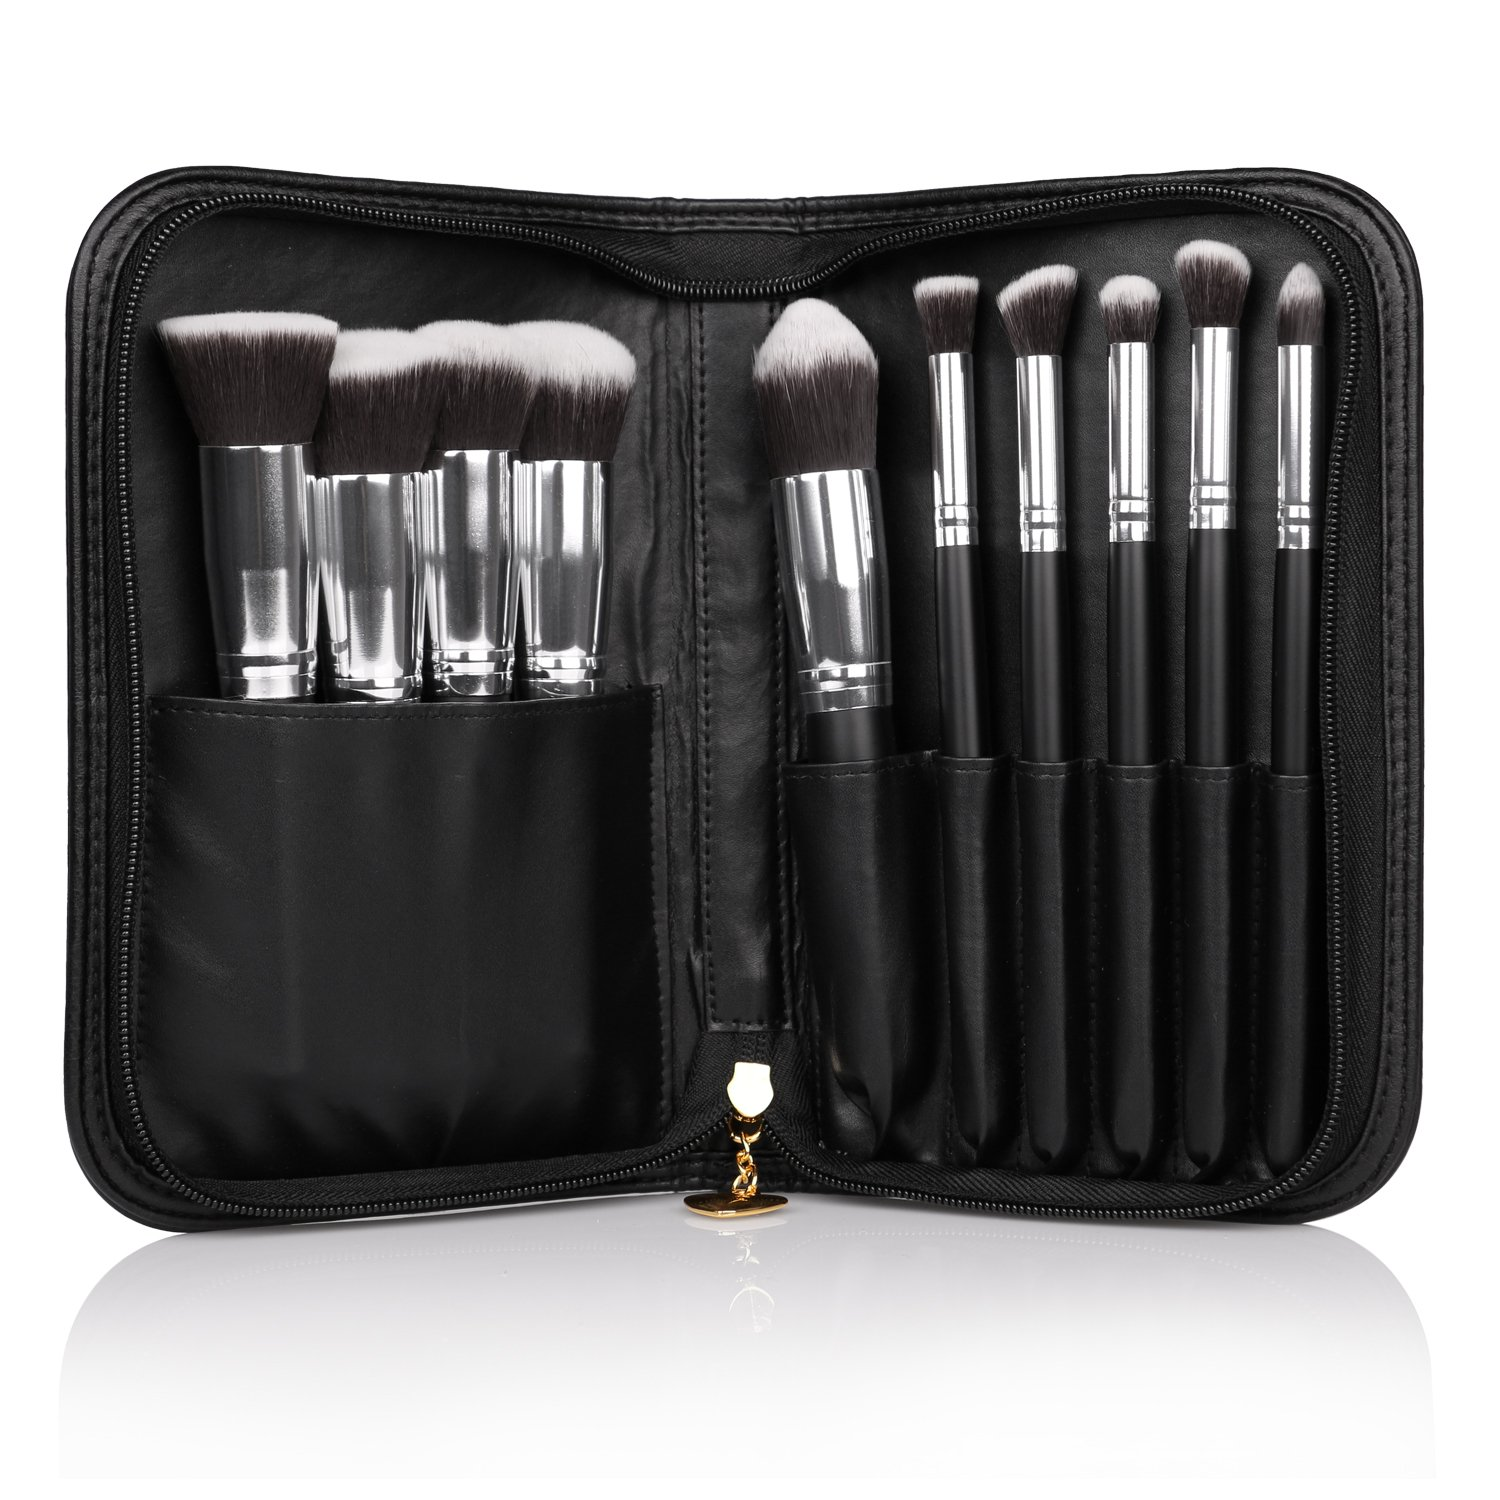 DUcare 10Pieces Professional Makeup Brush Set with Cosmetics Case by DUcare (Image #1)